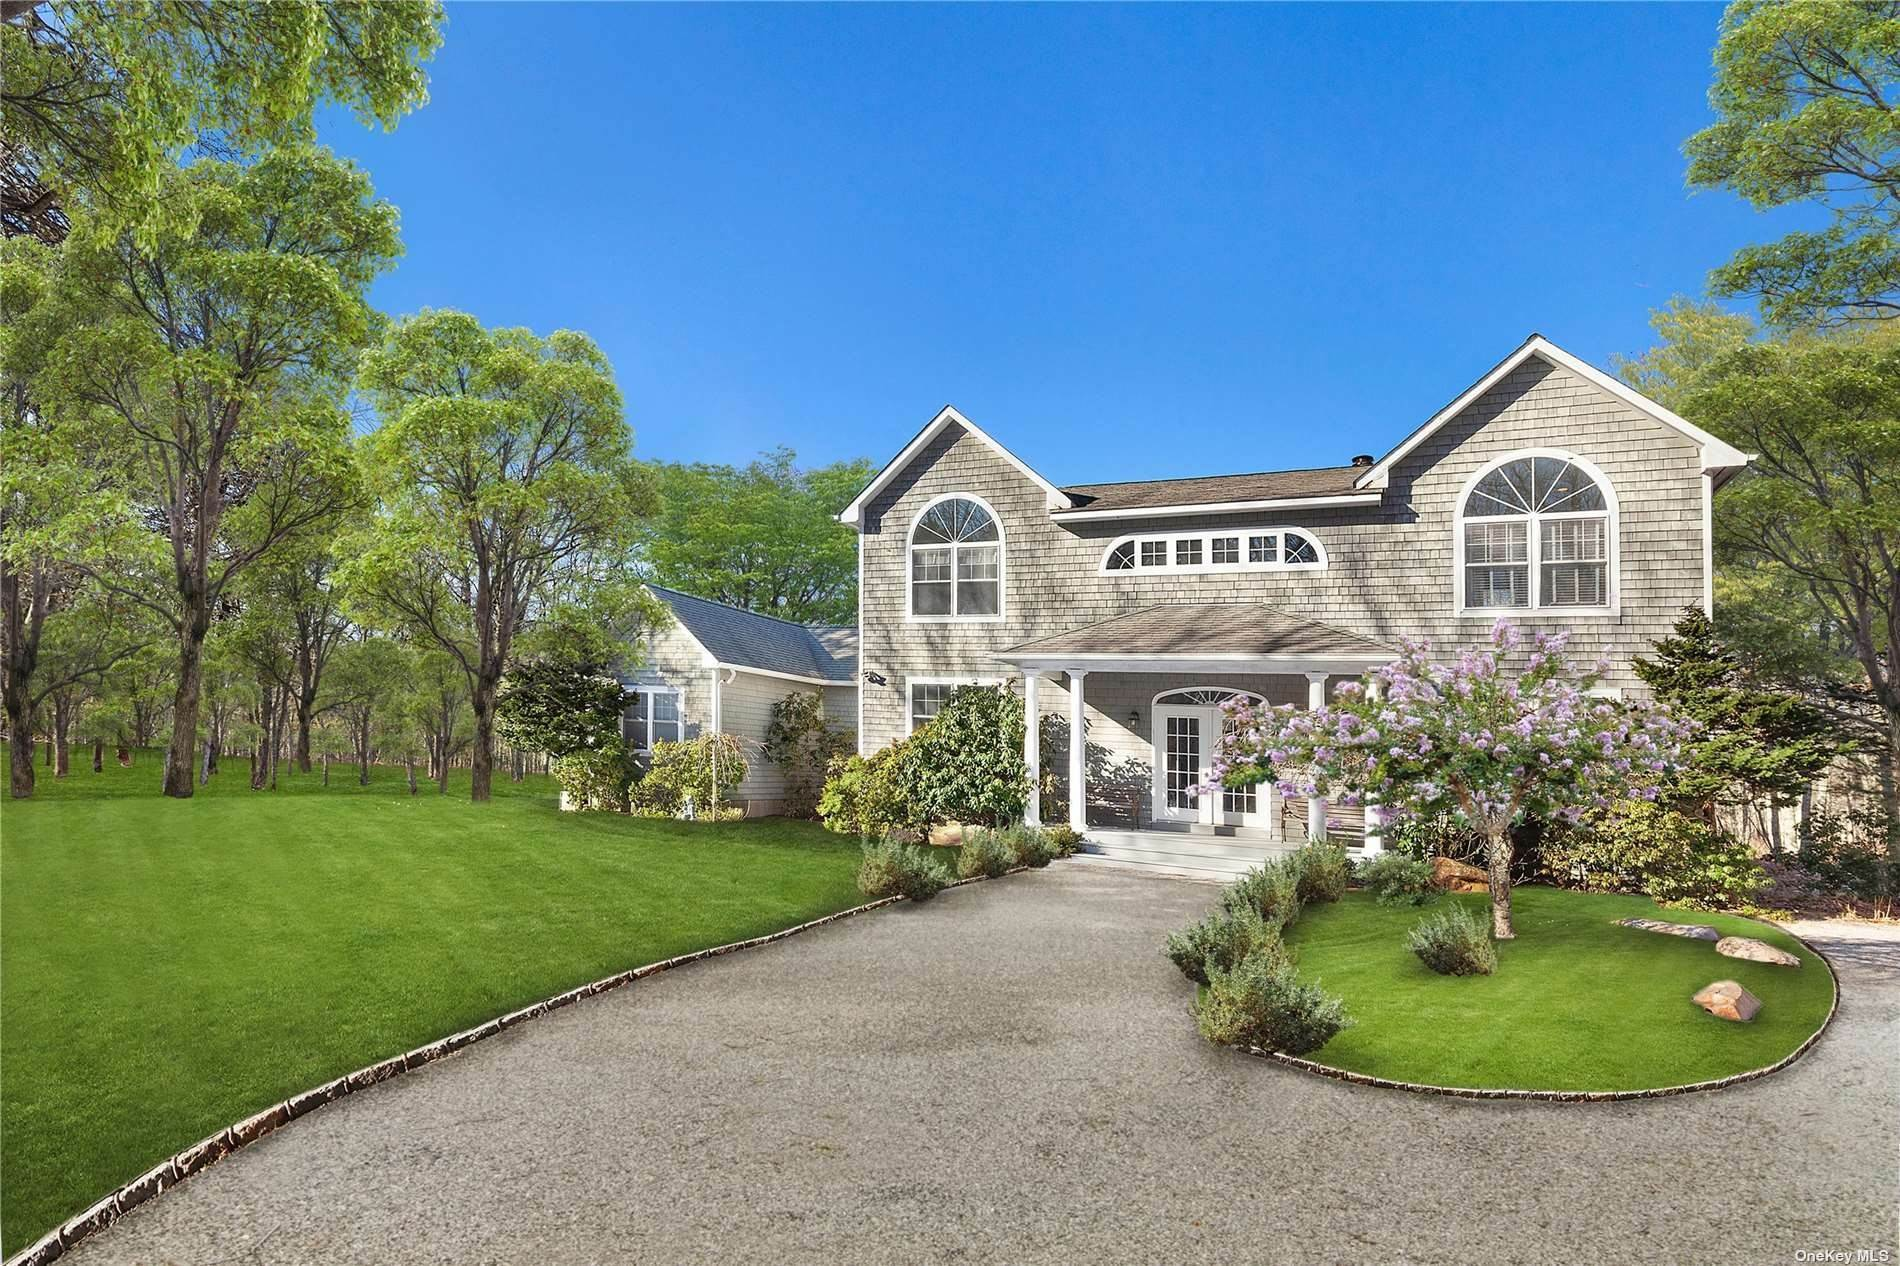 Residential for Sale at 528 Wainscott Nw Road Wainscott, New York 11975 United States